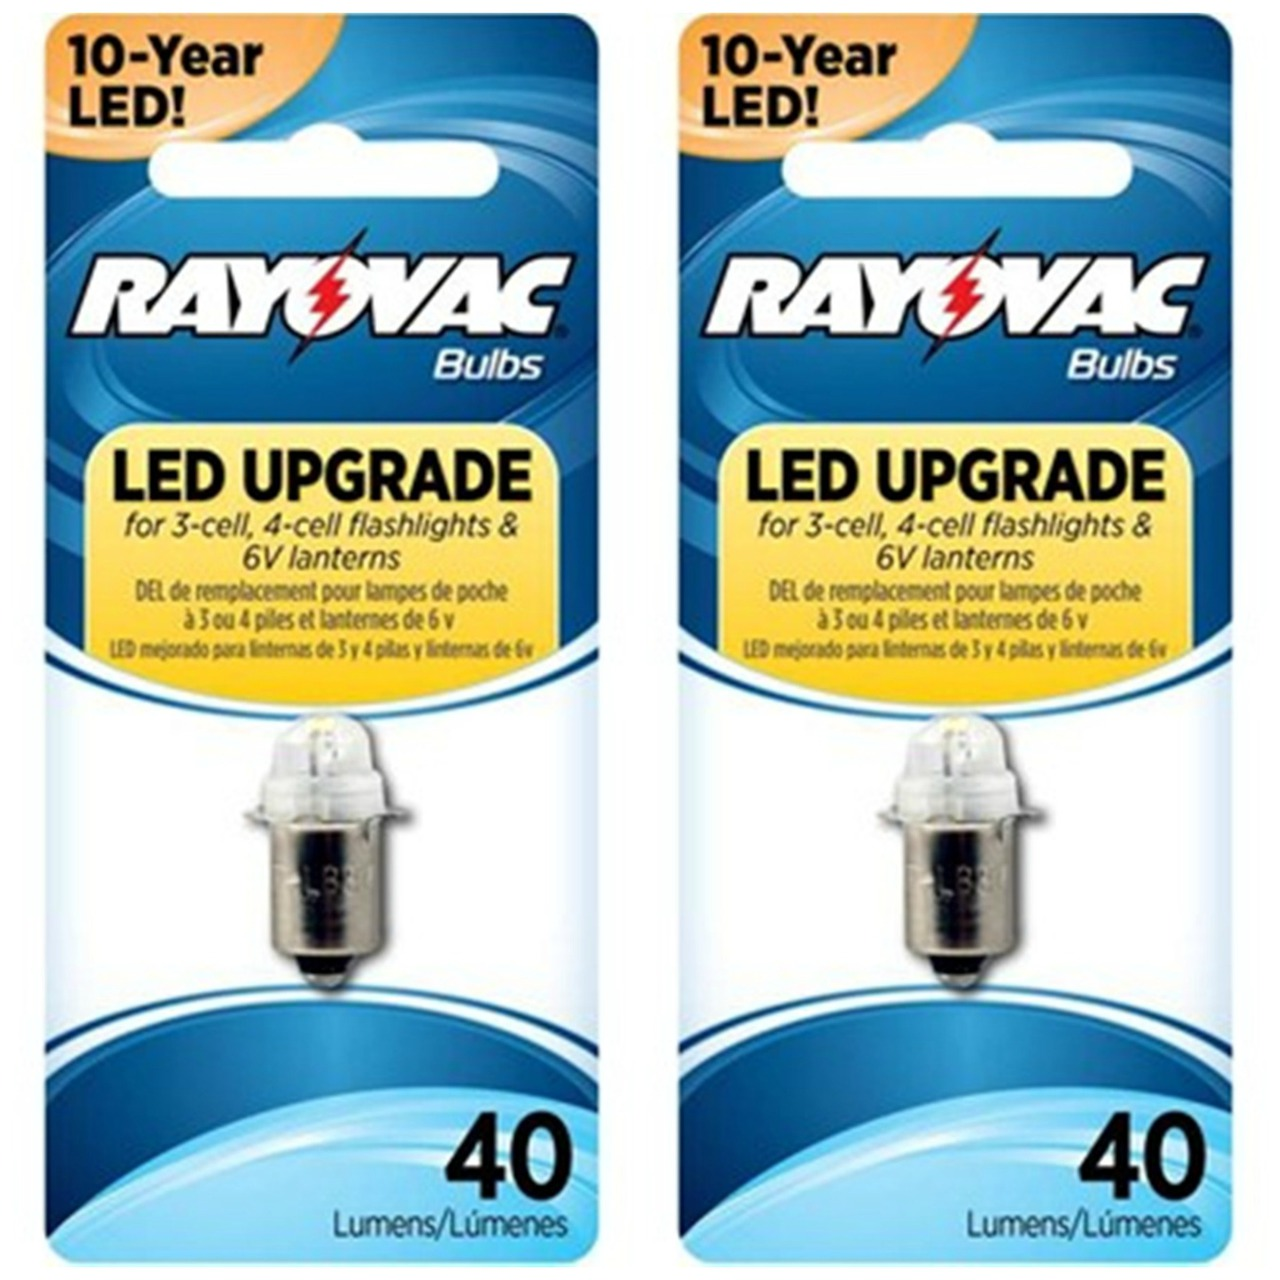 Rayovac LED Upgrade Bulb for 3-Cell, 4-Cell Flashlights and Lanterns 4V6VLED -2 Pack + 30% Off